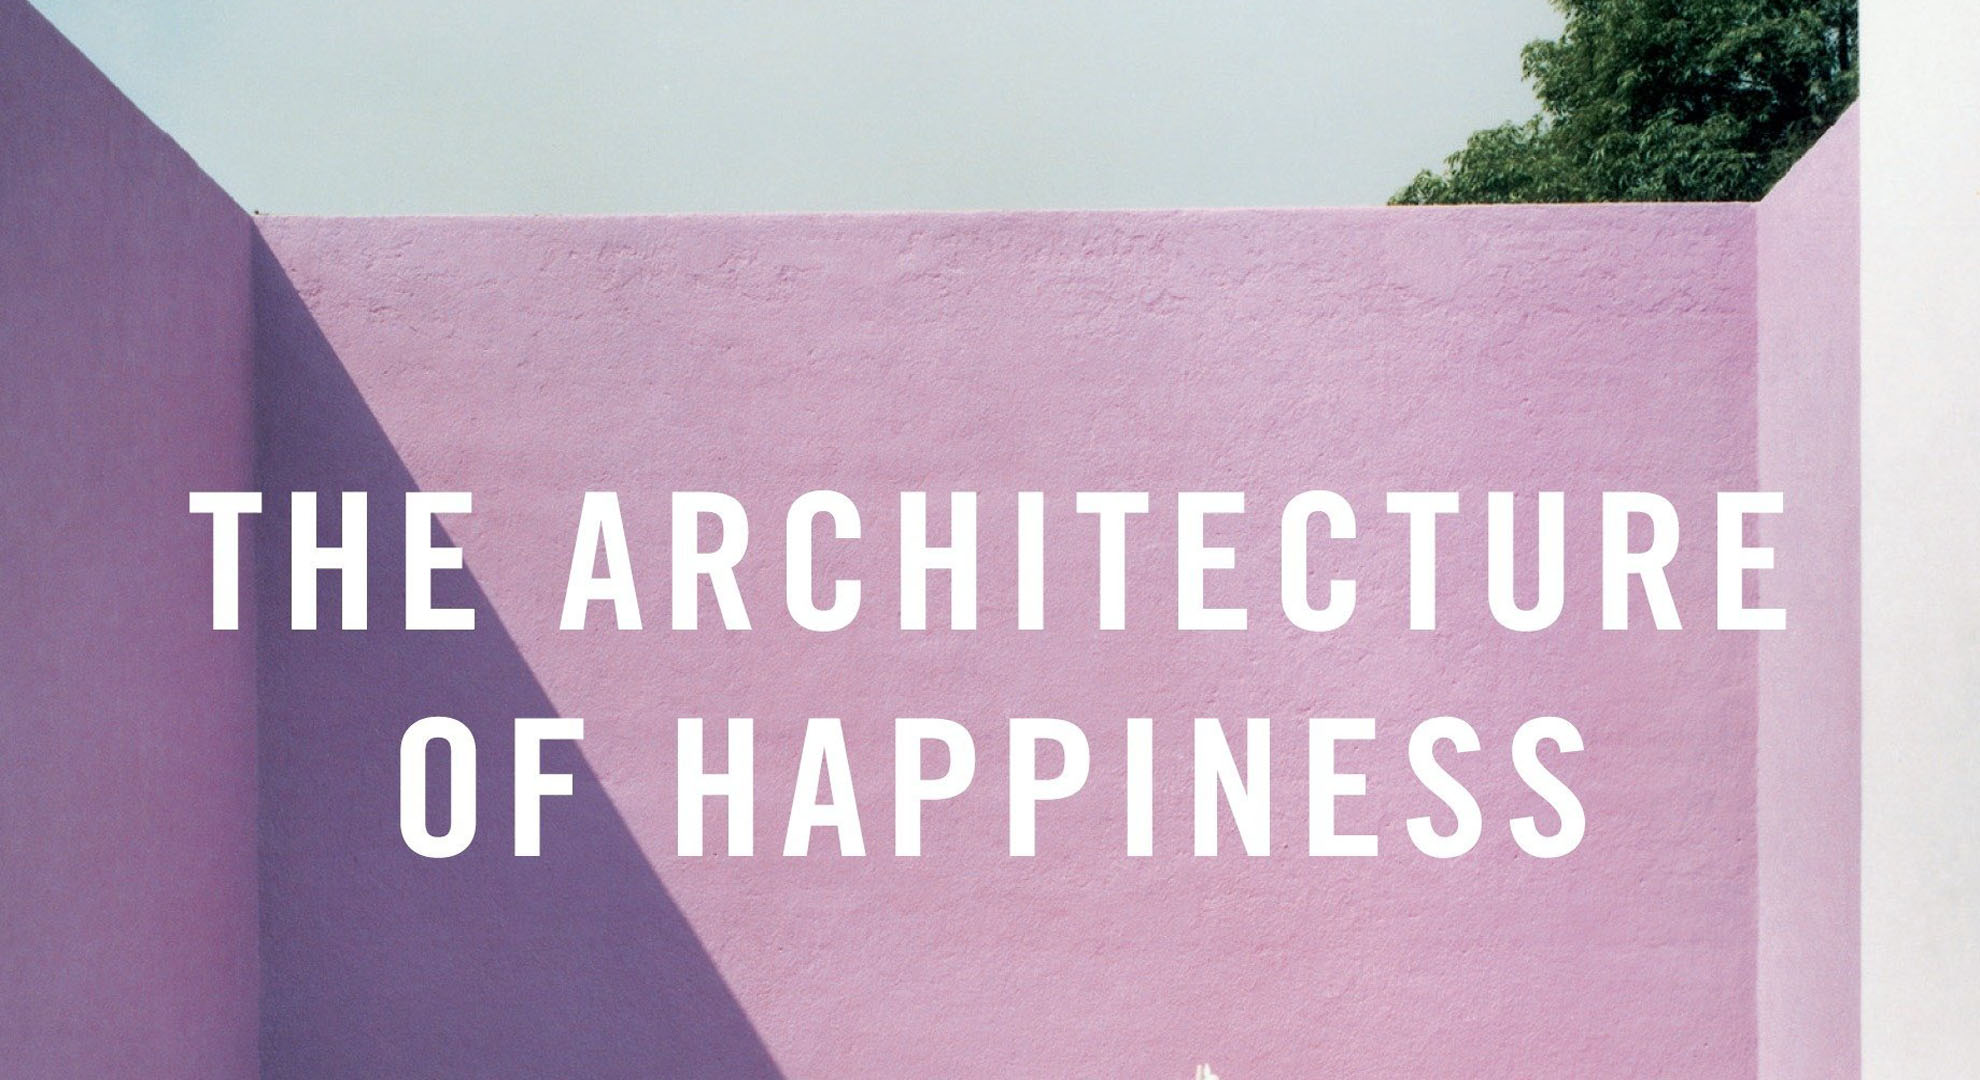 Book: The architecture of happiness